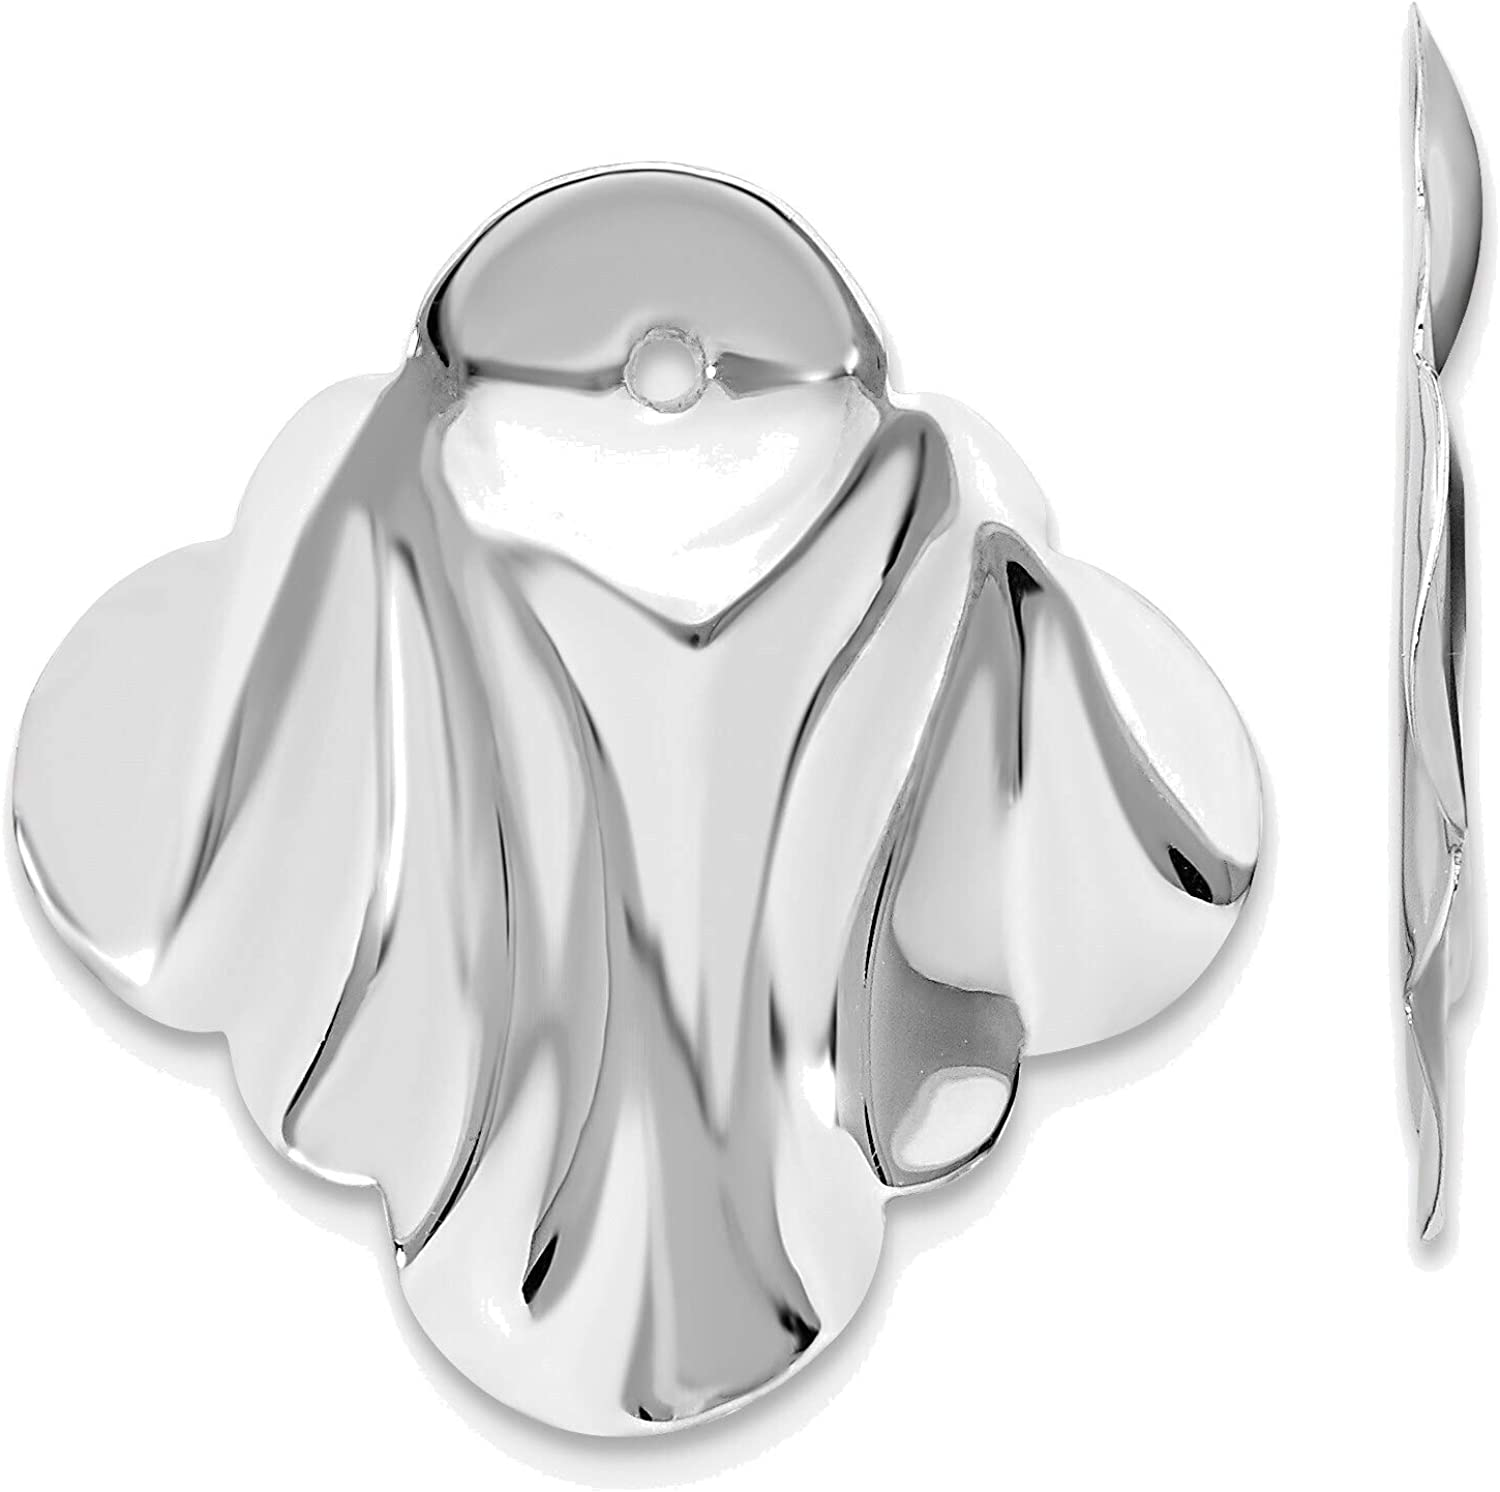 14kt White Gold Polished Hammered Fancy Earring Jackets